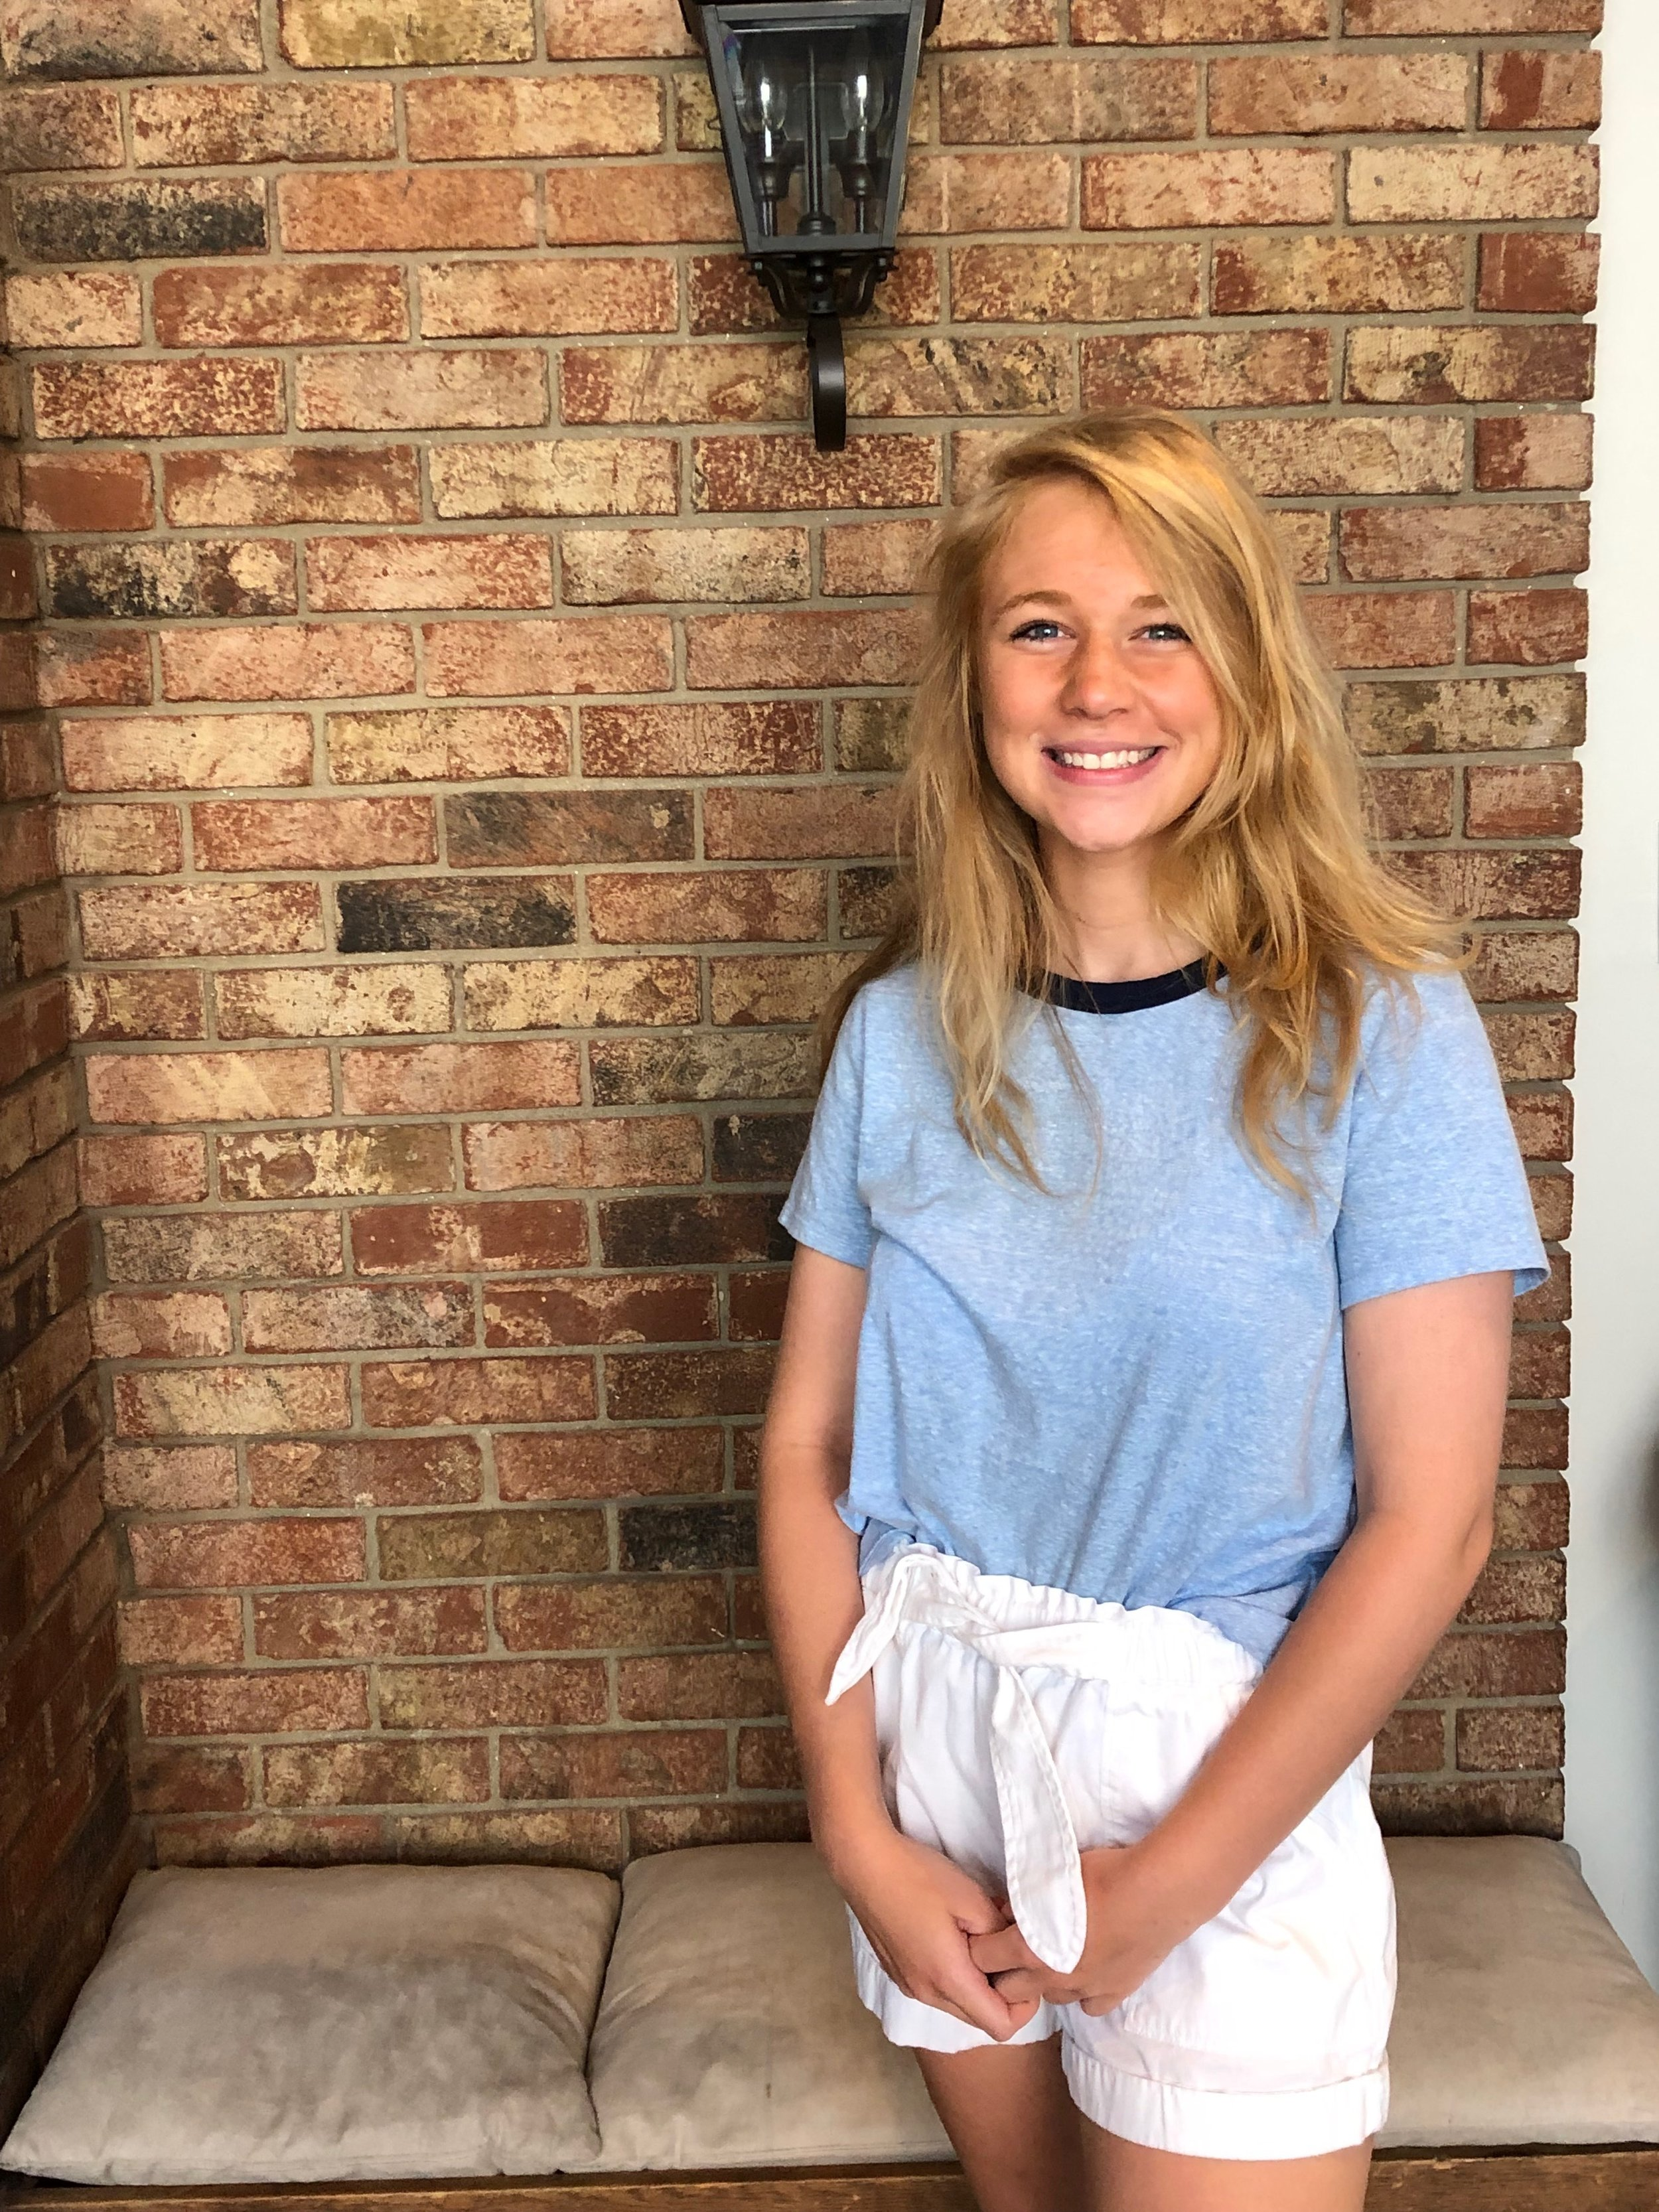 Lewis Walton - Lewis loves photography, traveling, concerts, and hanging out with friends. She loves live music and seeing people perform live. Lewis loves cereal. She wants to be a social worker when she grows up. Her favorite kinds of music are Christian, rap, country, and pop. She likes to do a lot of things in her free time, including listening to music, watching TV, and playing board games. Lewis also enjoys romantic comedies.